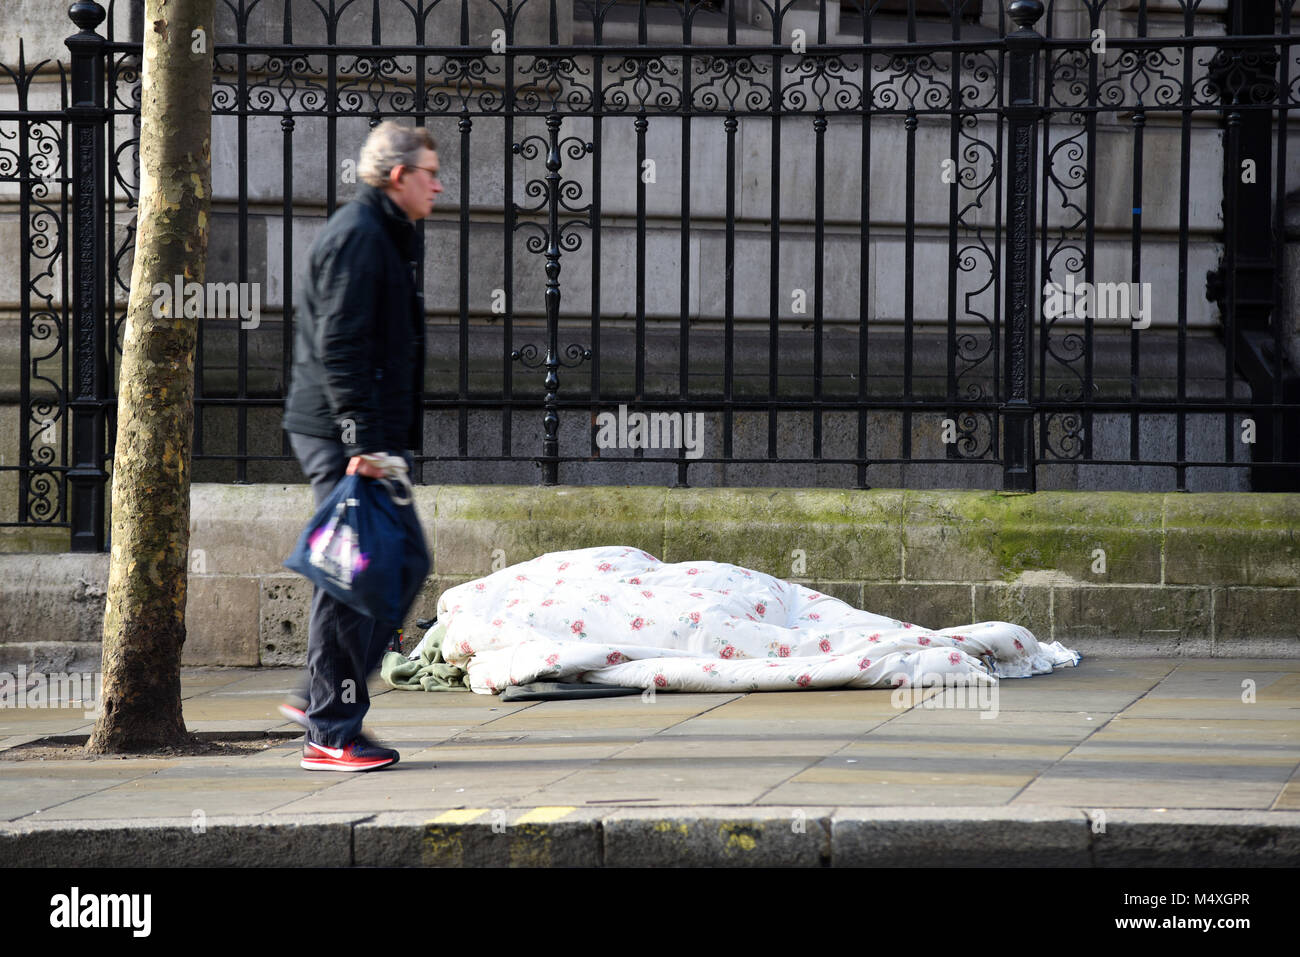 Walking by homeless person sleeping on the street in London. Homelessness. Passer by ignoring rough sleeper on cold - Stock Image